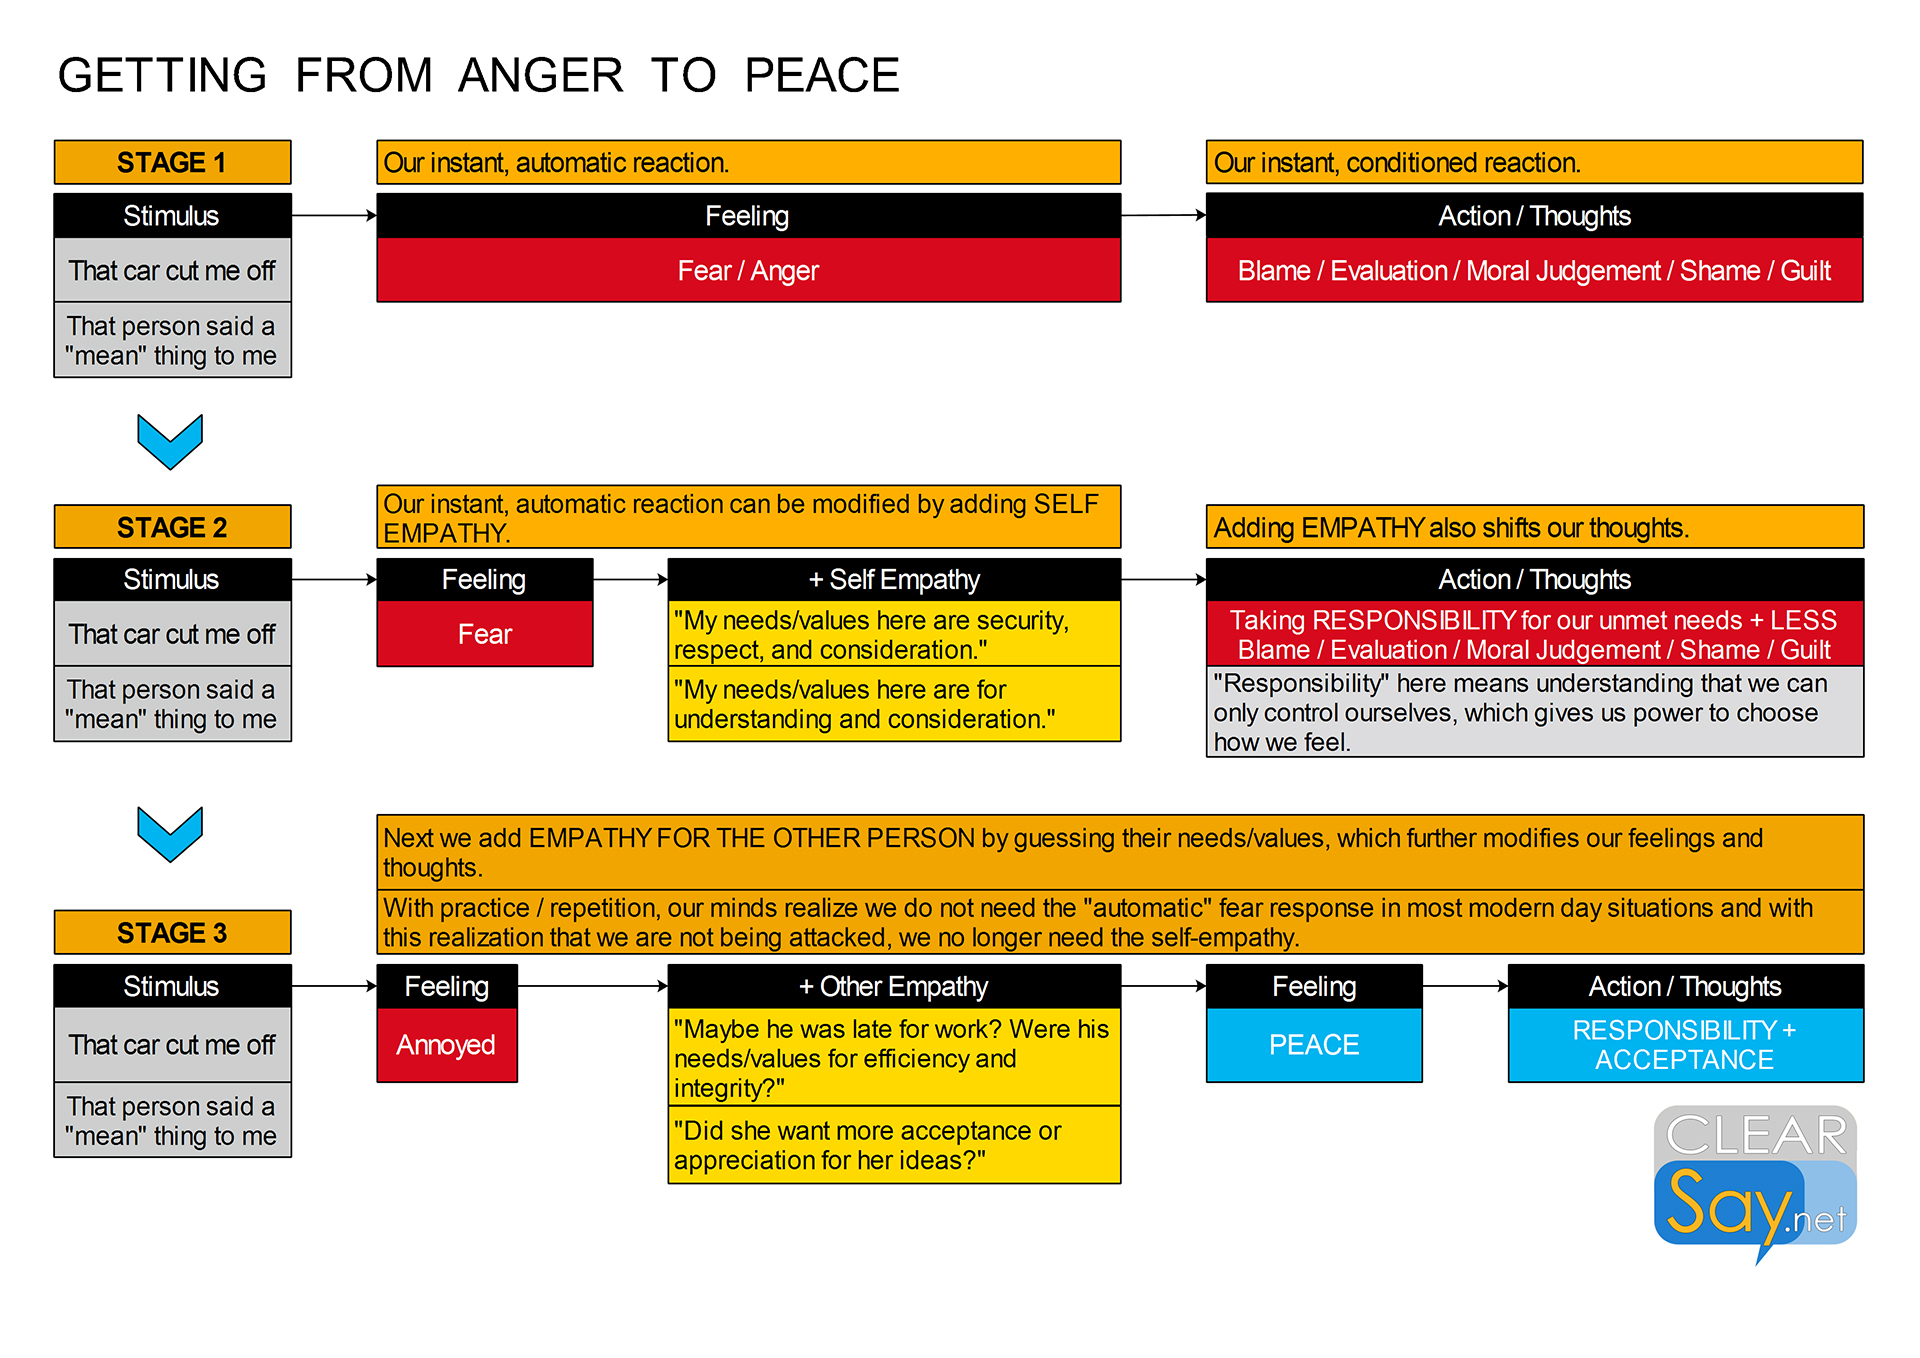 Getting from anger to peace